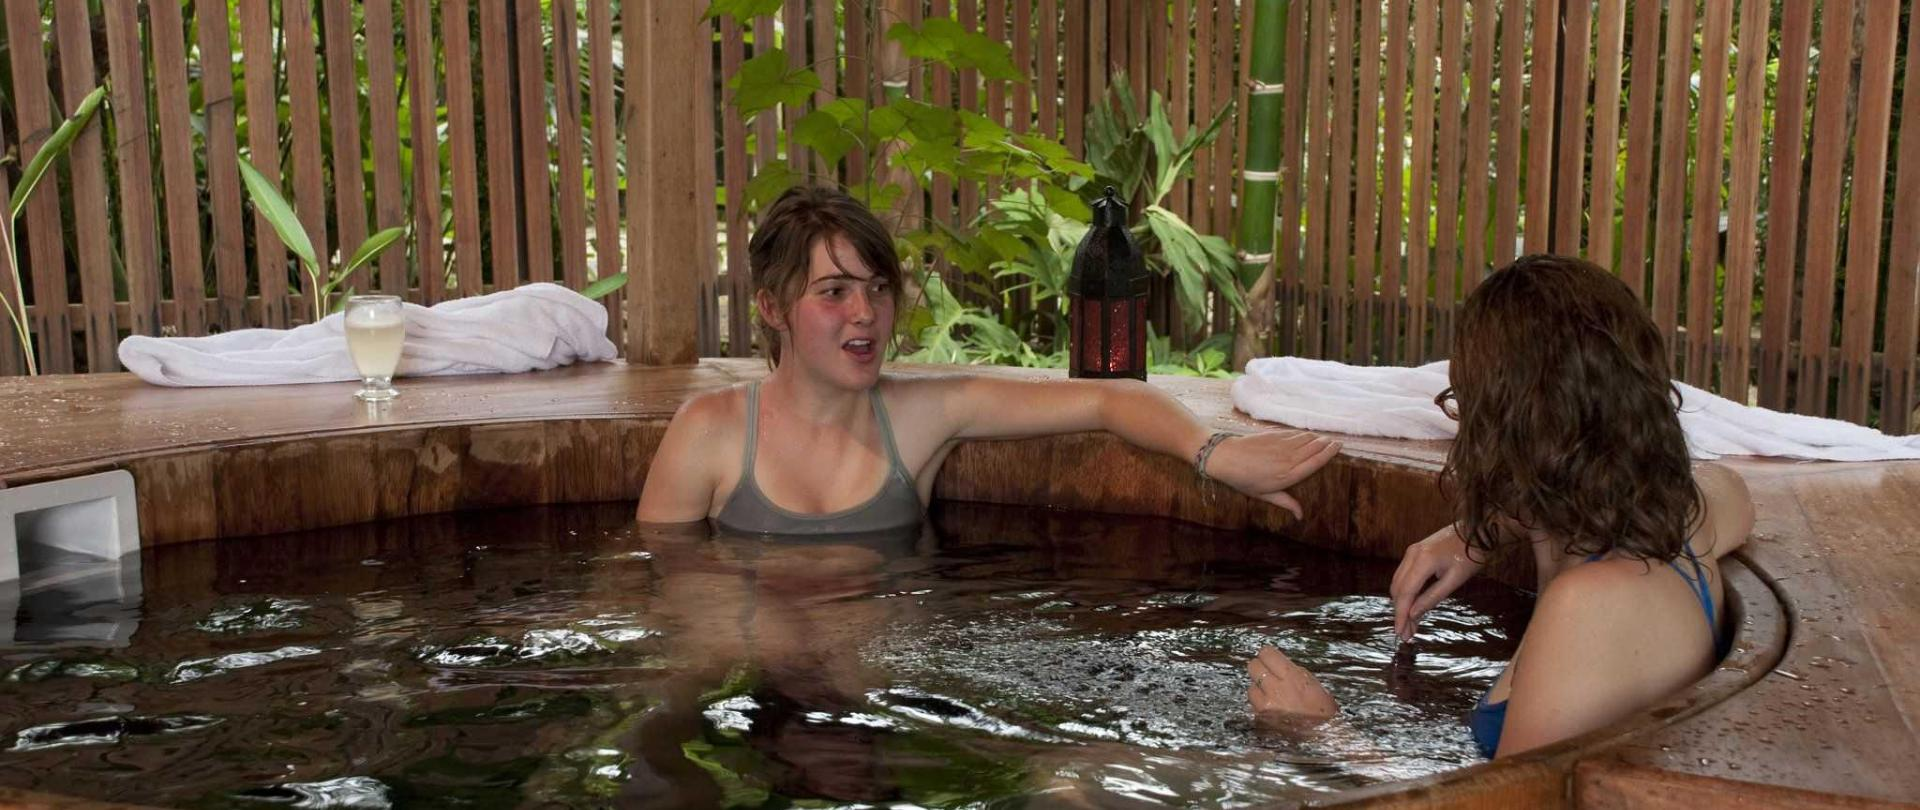 hot-tub-y-jardin.jpg